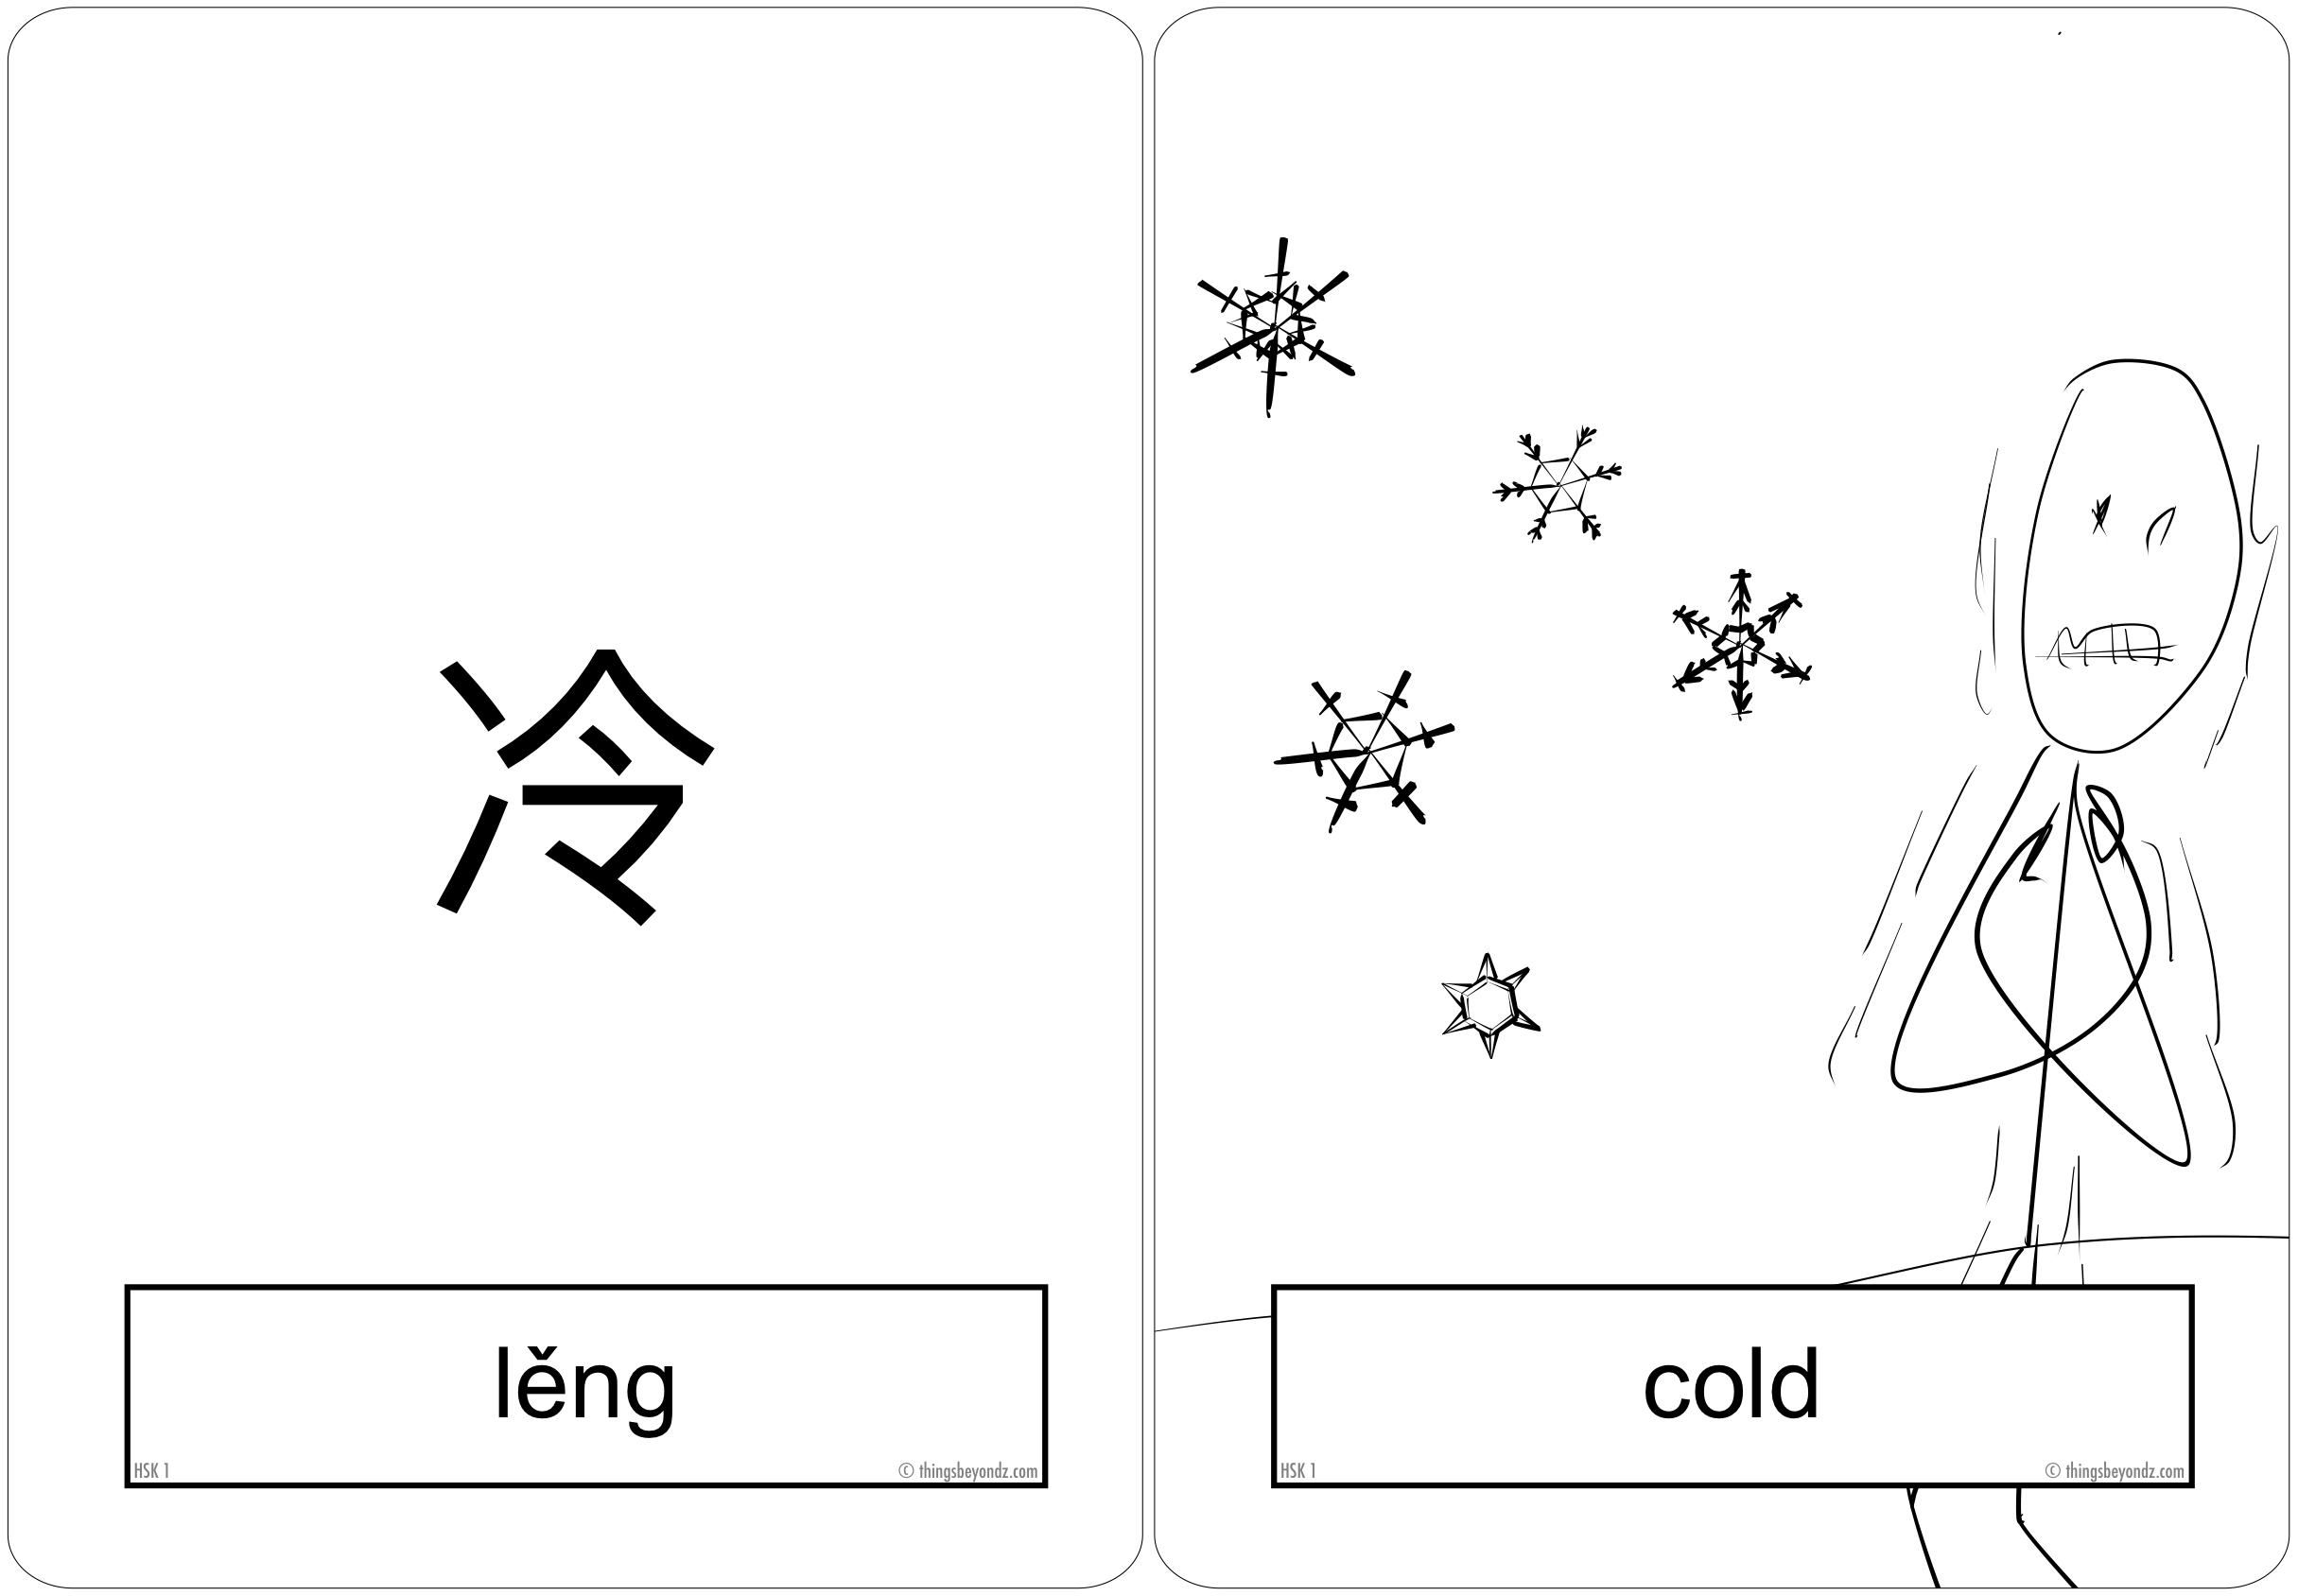 Hsk 1 Vocabulary L Ng Cold